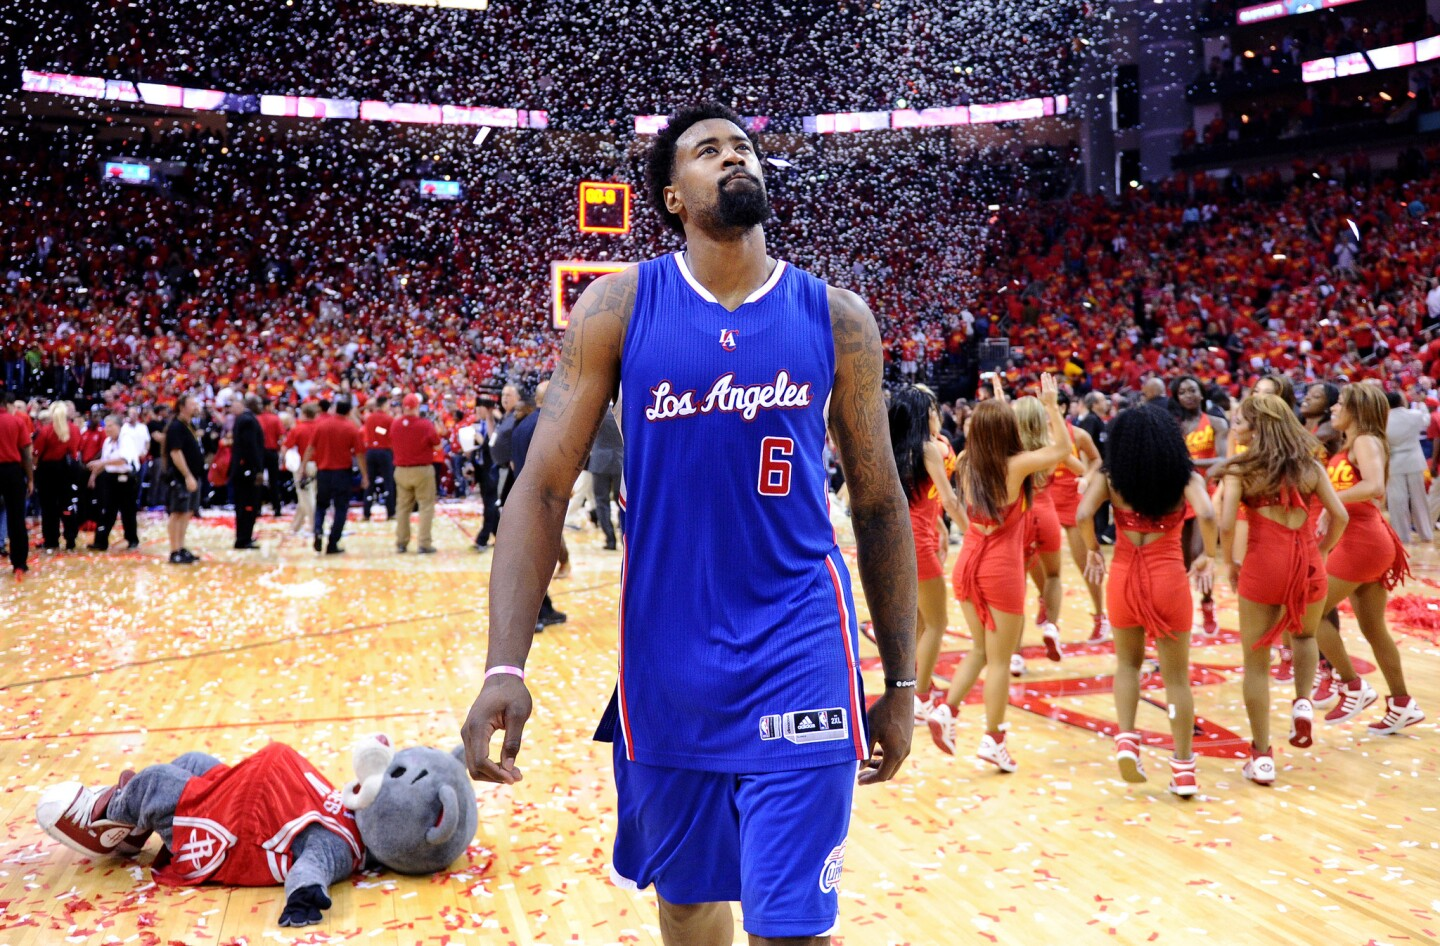 Clippers center DeAndre Jordan exits the court after the Rockets won Game 7 of their playoff series, 113-100, on Sunday at Toyota Center.